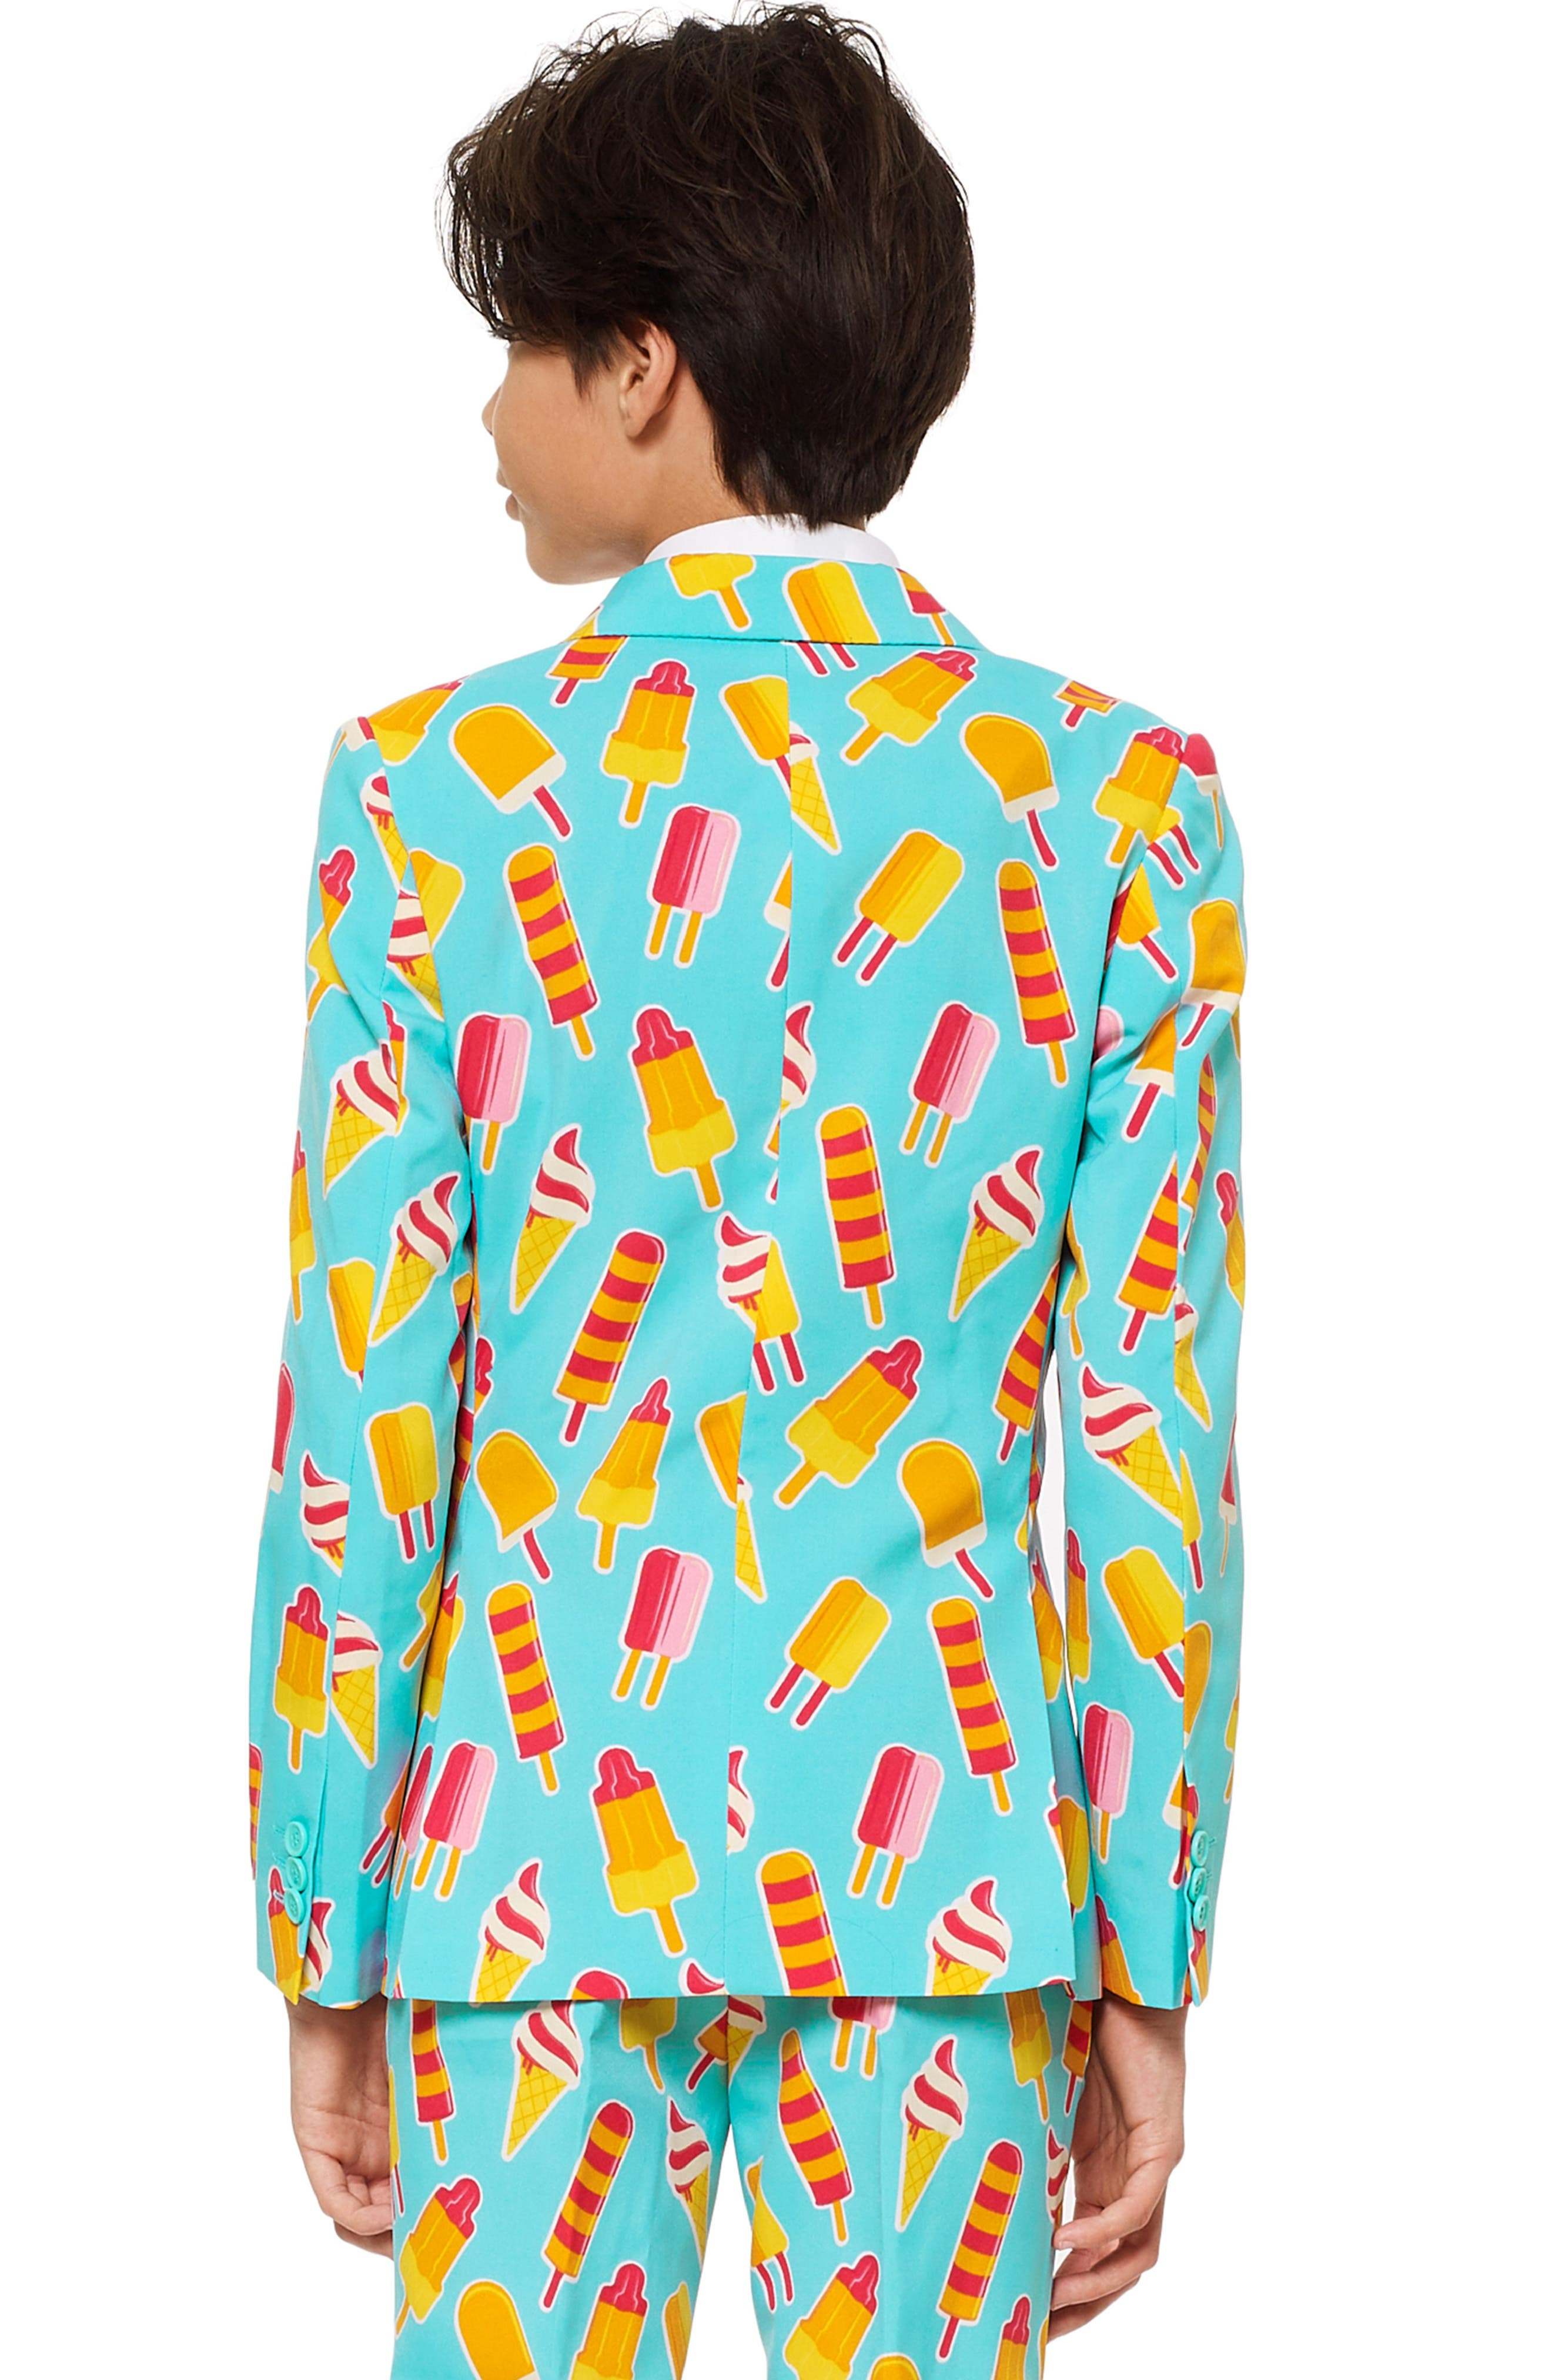 Cool Cones Two-Piece Suit with Tie,                             Alternate thumbnail 2, color,                             BLUE/ GREEN